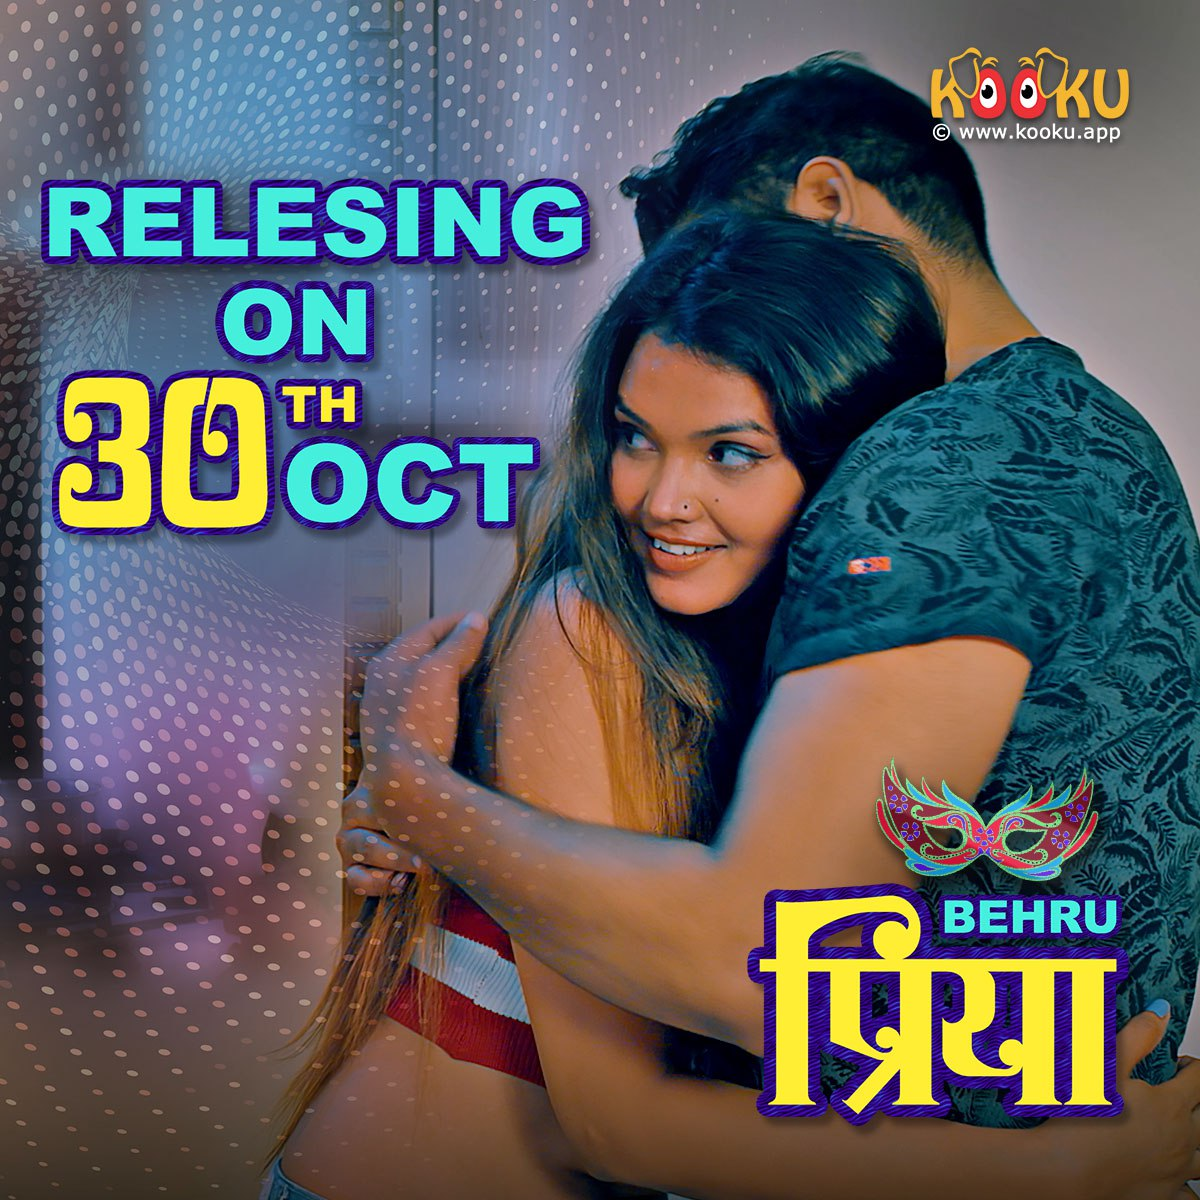 Behrupriya 2020 S01 Hindi Kooku App Web Series Official Trailer 1080p HDRip 36MB Download